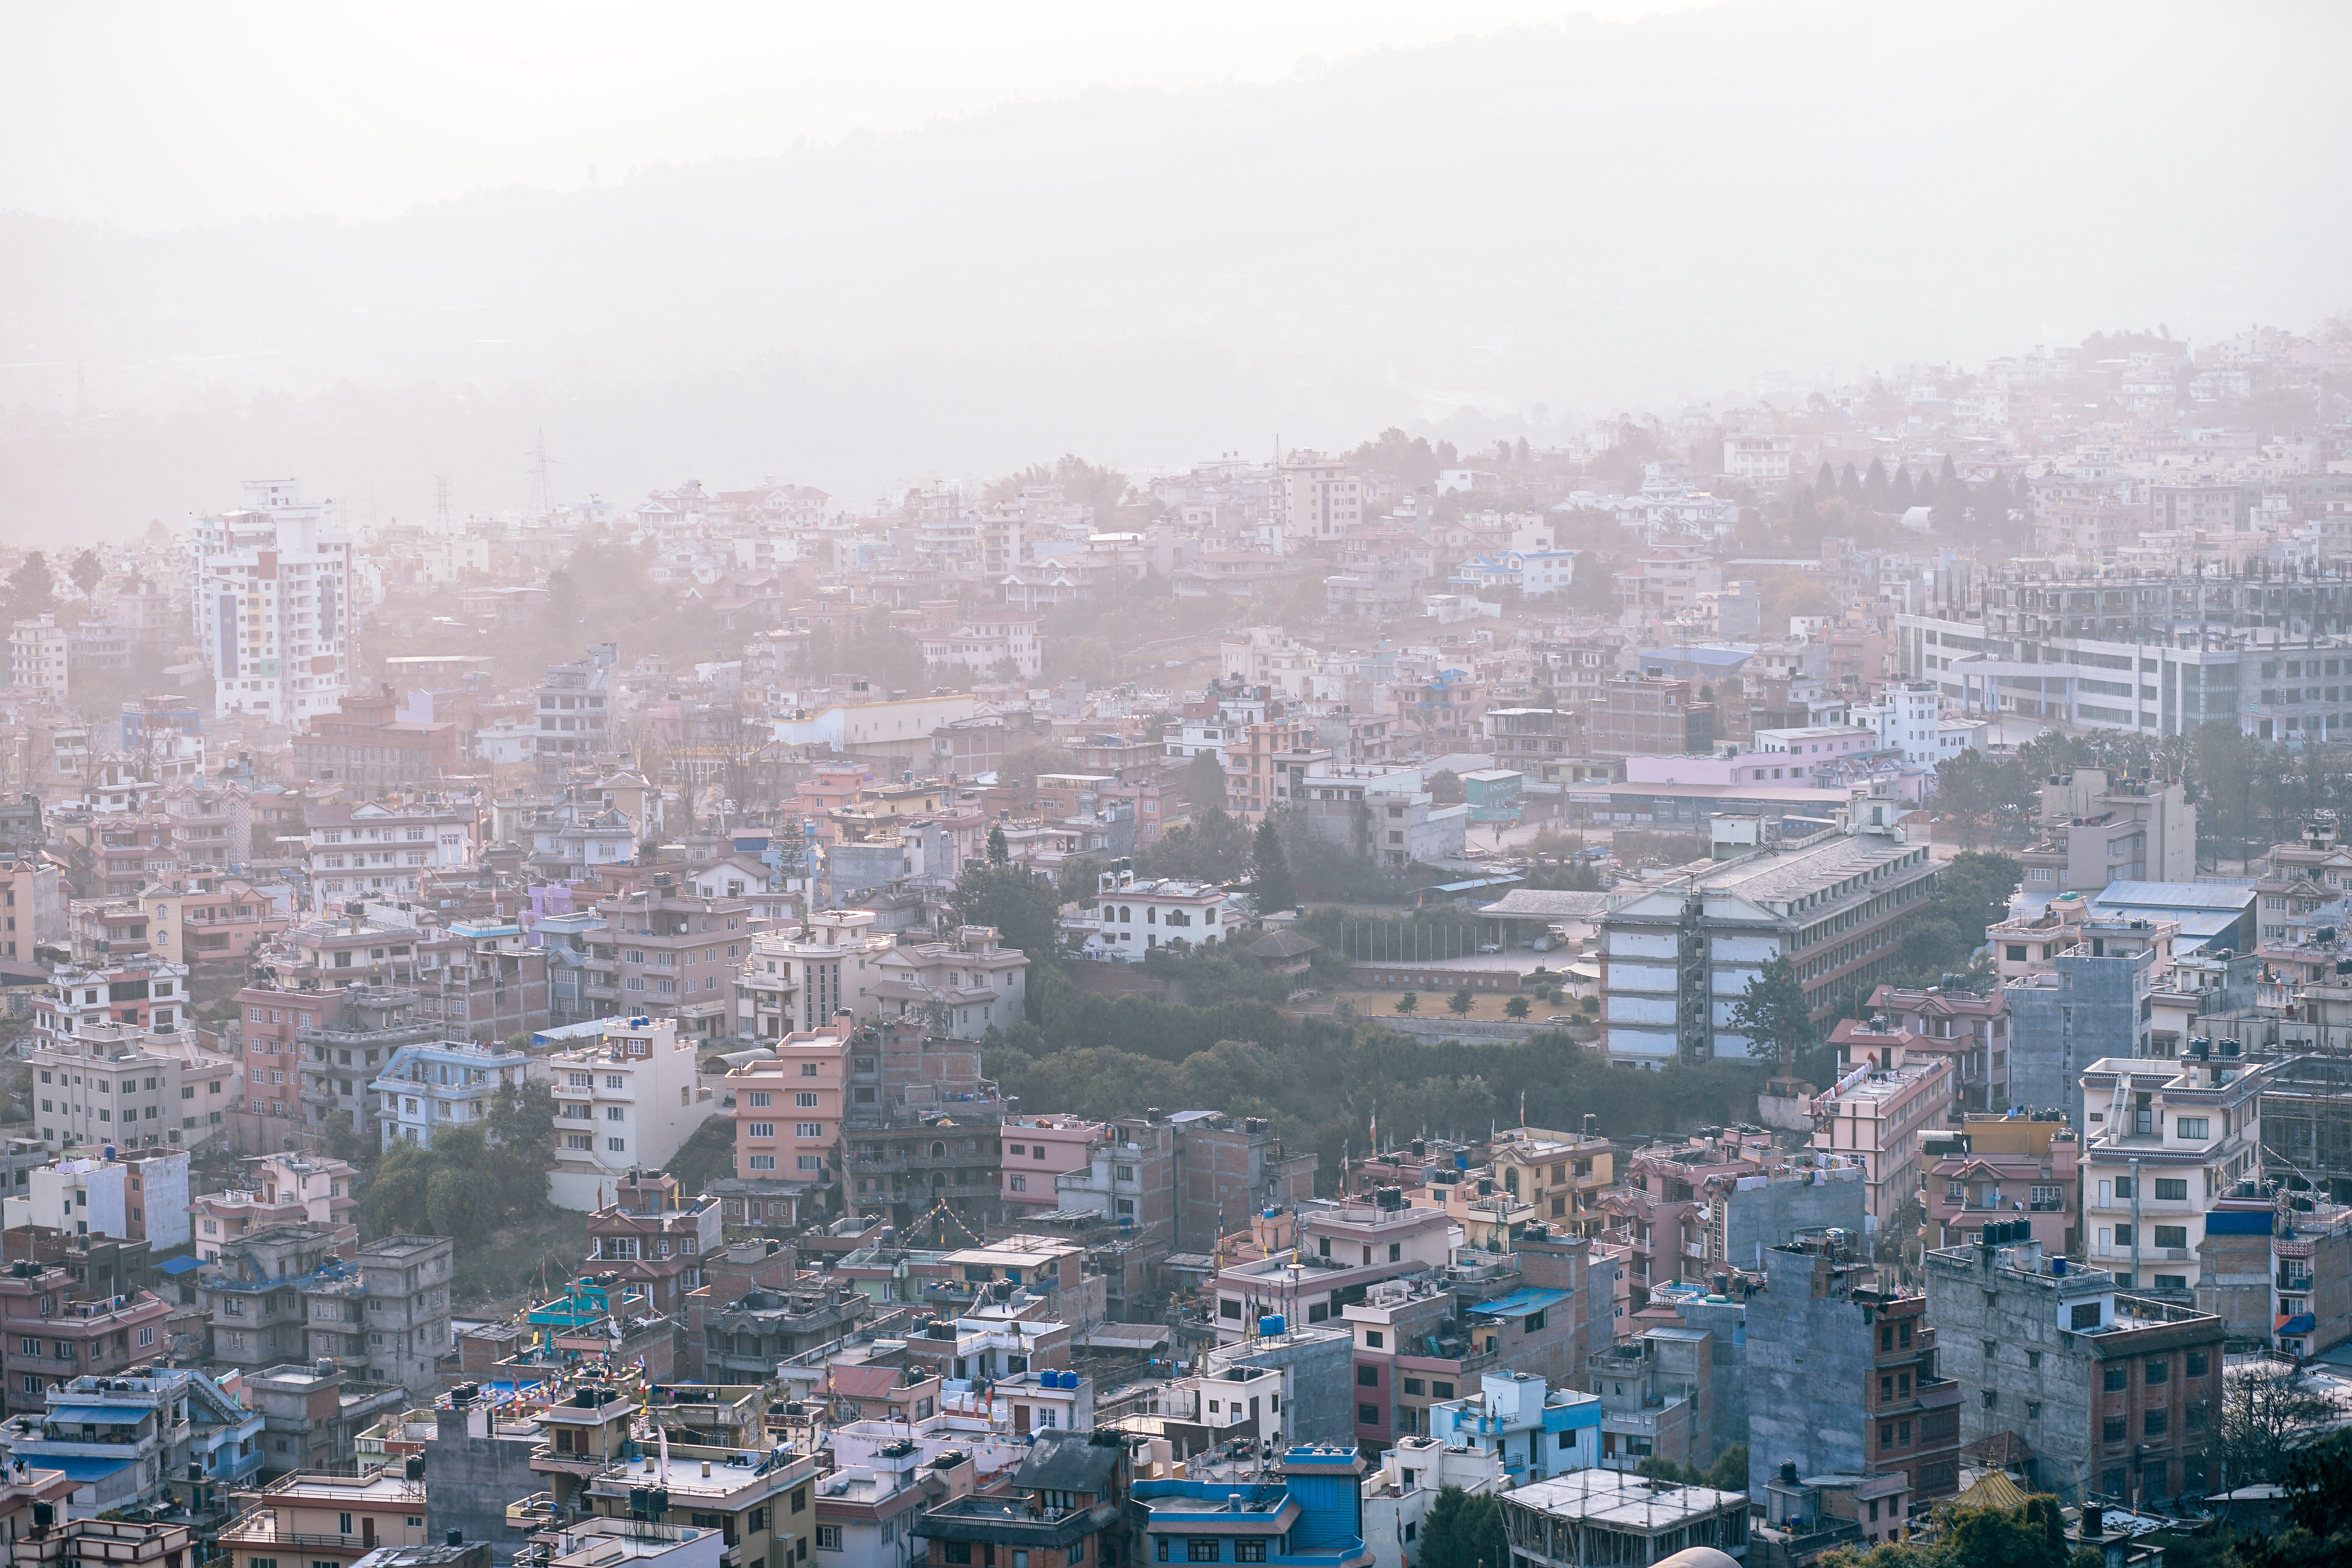 What the city of Kathmandu looks like when photogrpahed from above.